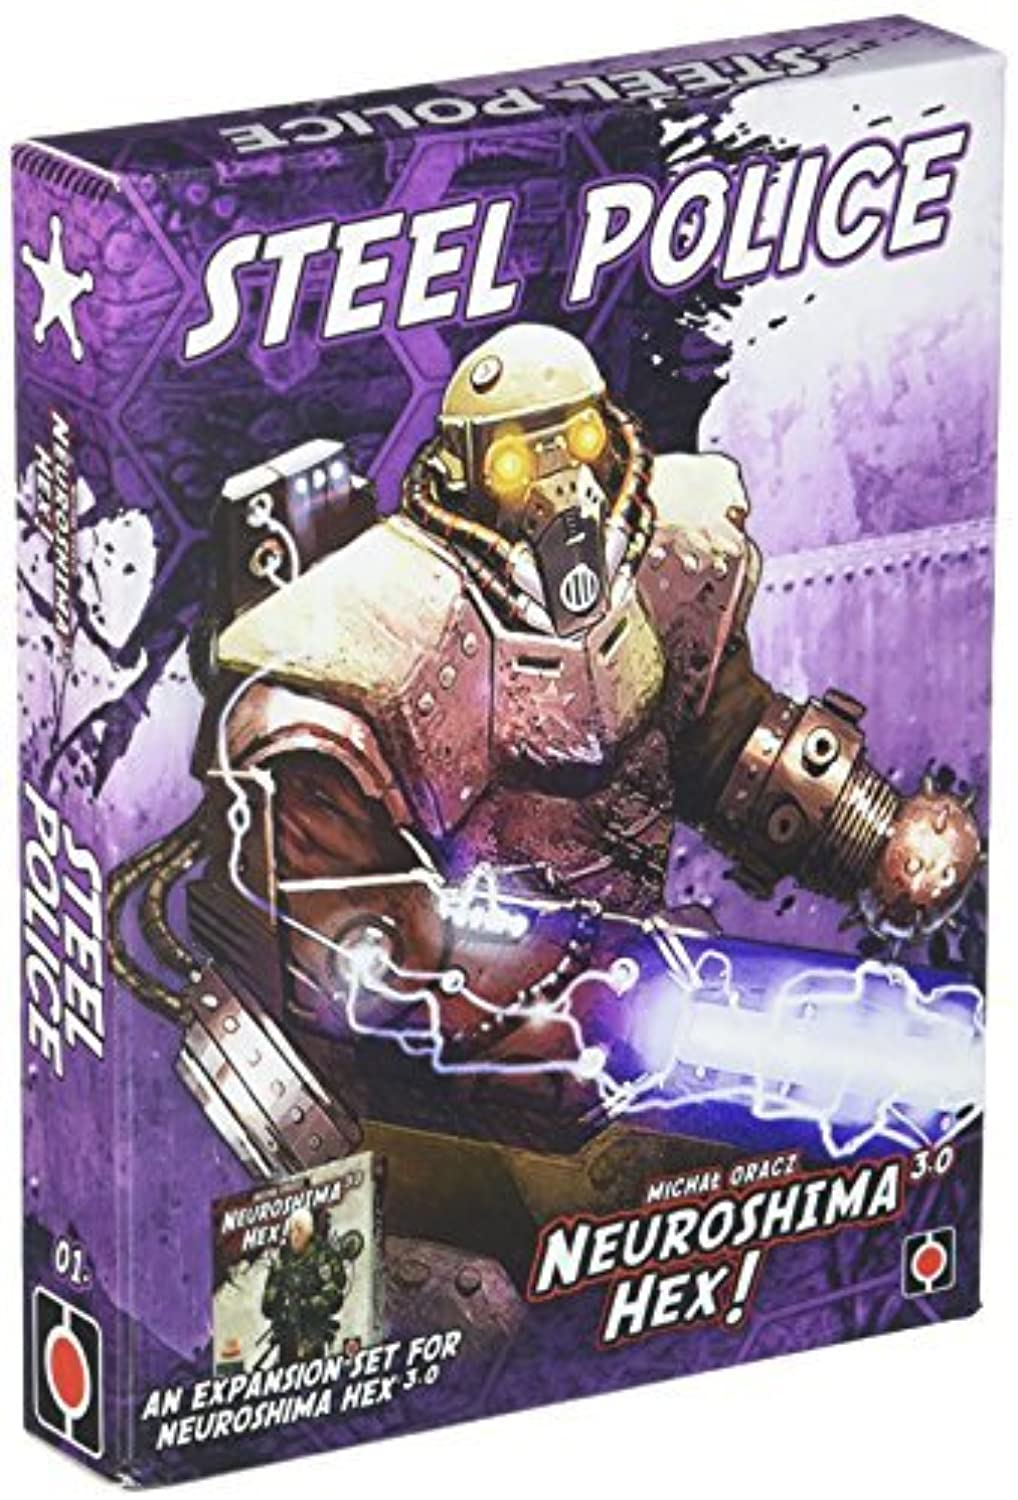 Neuroshima Hex 3.0 Steel Police Board Game by Portal Games